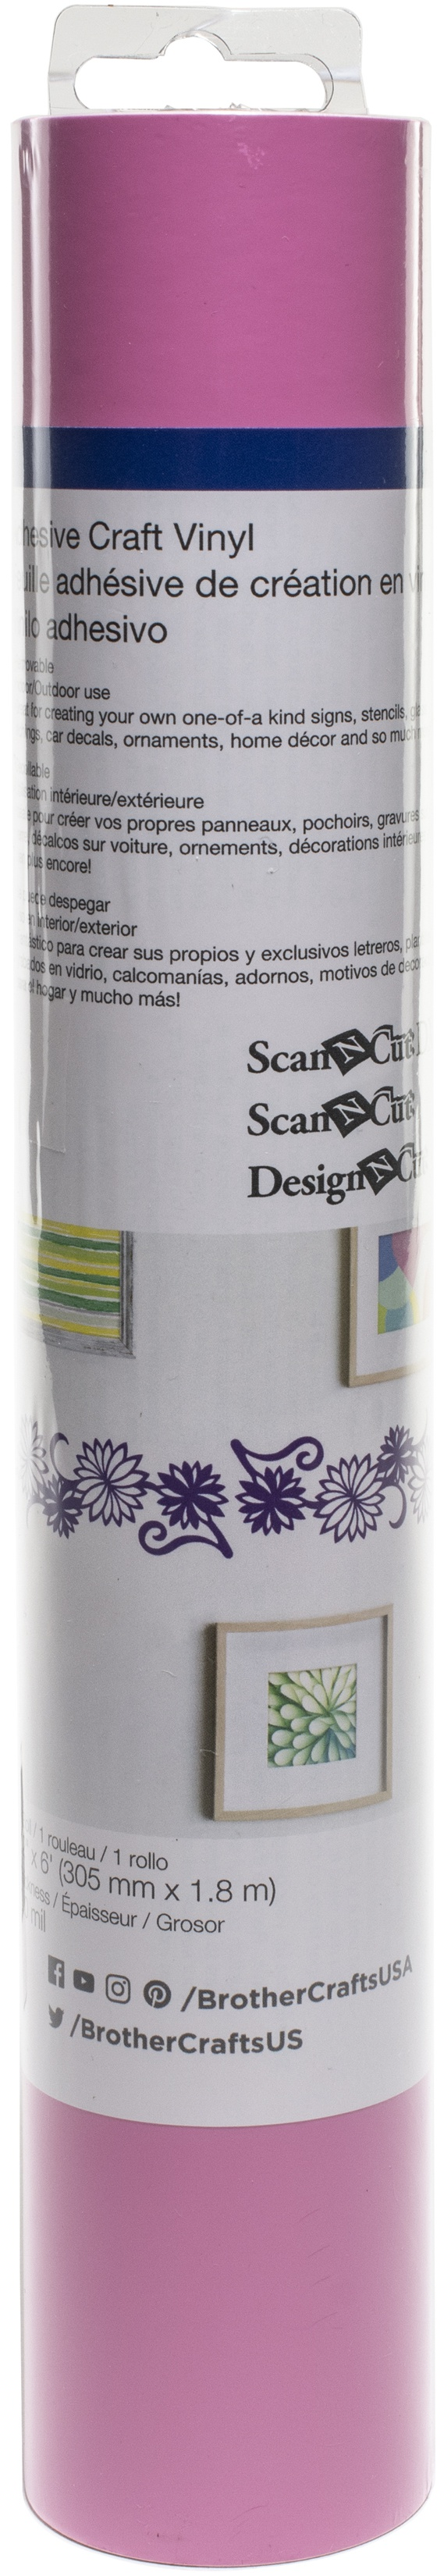 Brother ScanNCut SDX125 Adhesive Craft Vinyl Roll 6ft-Light Pink